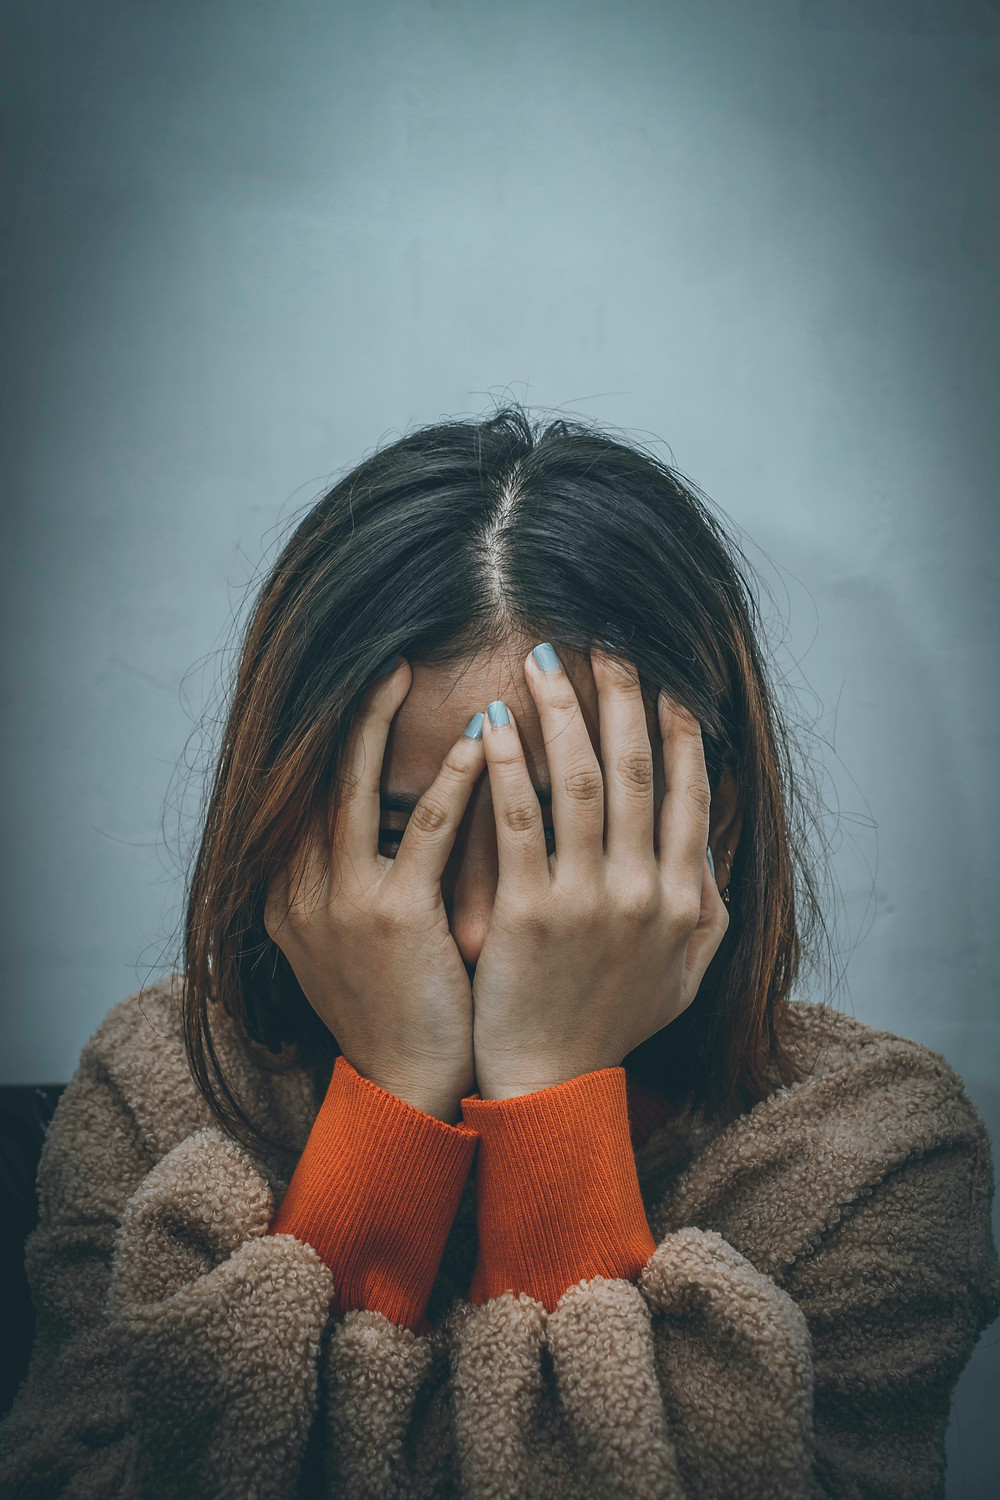 Millennial suffers from anxiety during Covid.Catalyss Counseling provides treatment for depression and anxiety in Colorado through online therapy and in person counseling in the Denver area 80209 and 80210